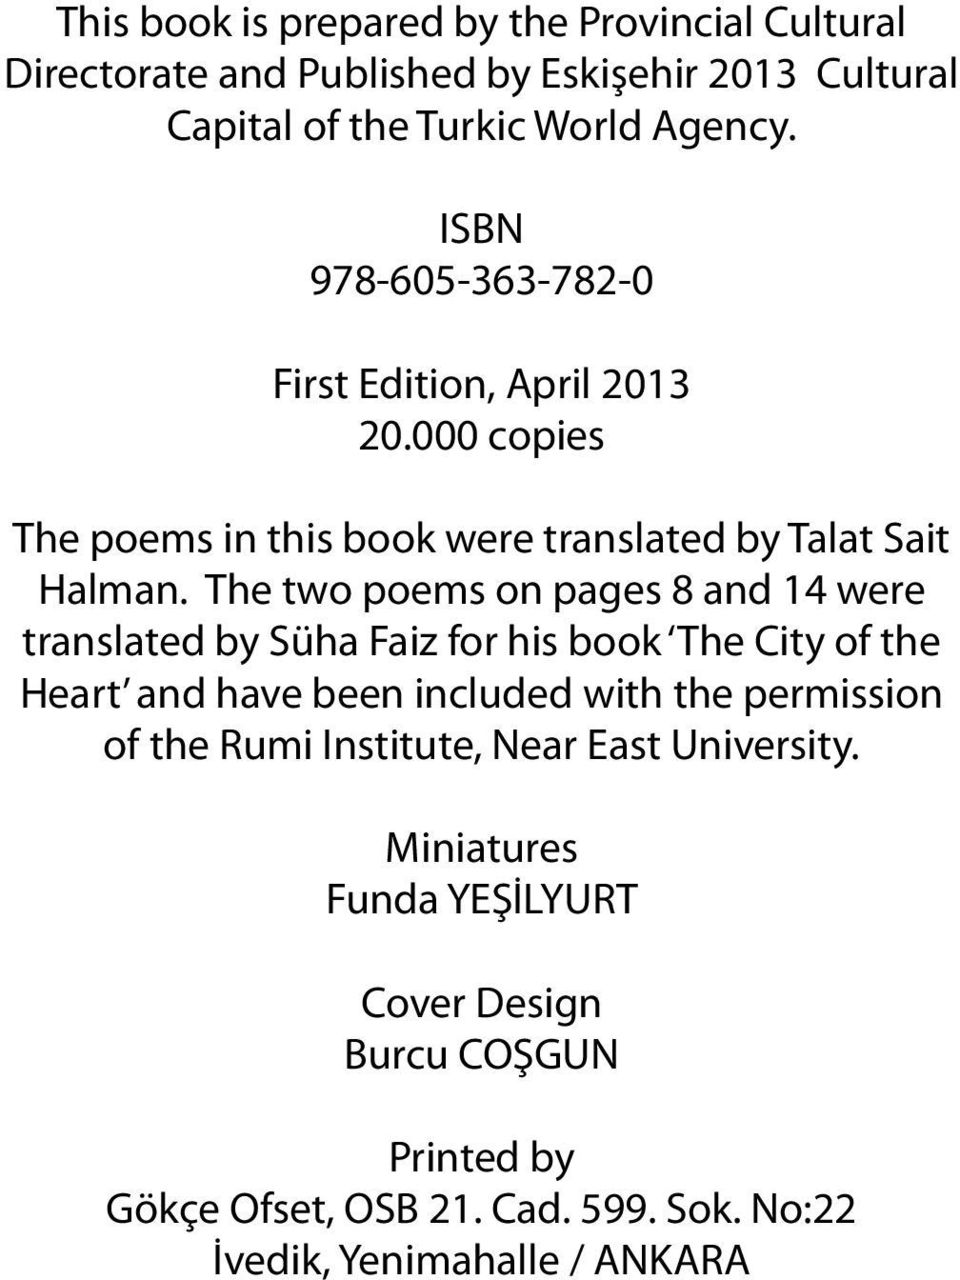 The two poems on pages 8 and 14 were translated by Süha Faiz for his book The City of the Heart and have been included with the permission of